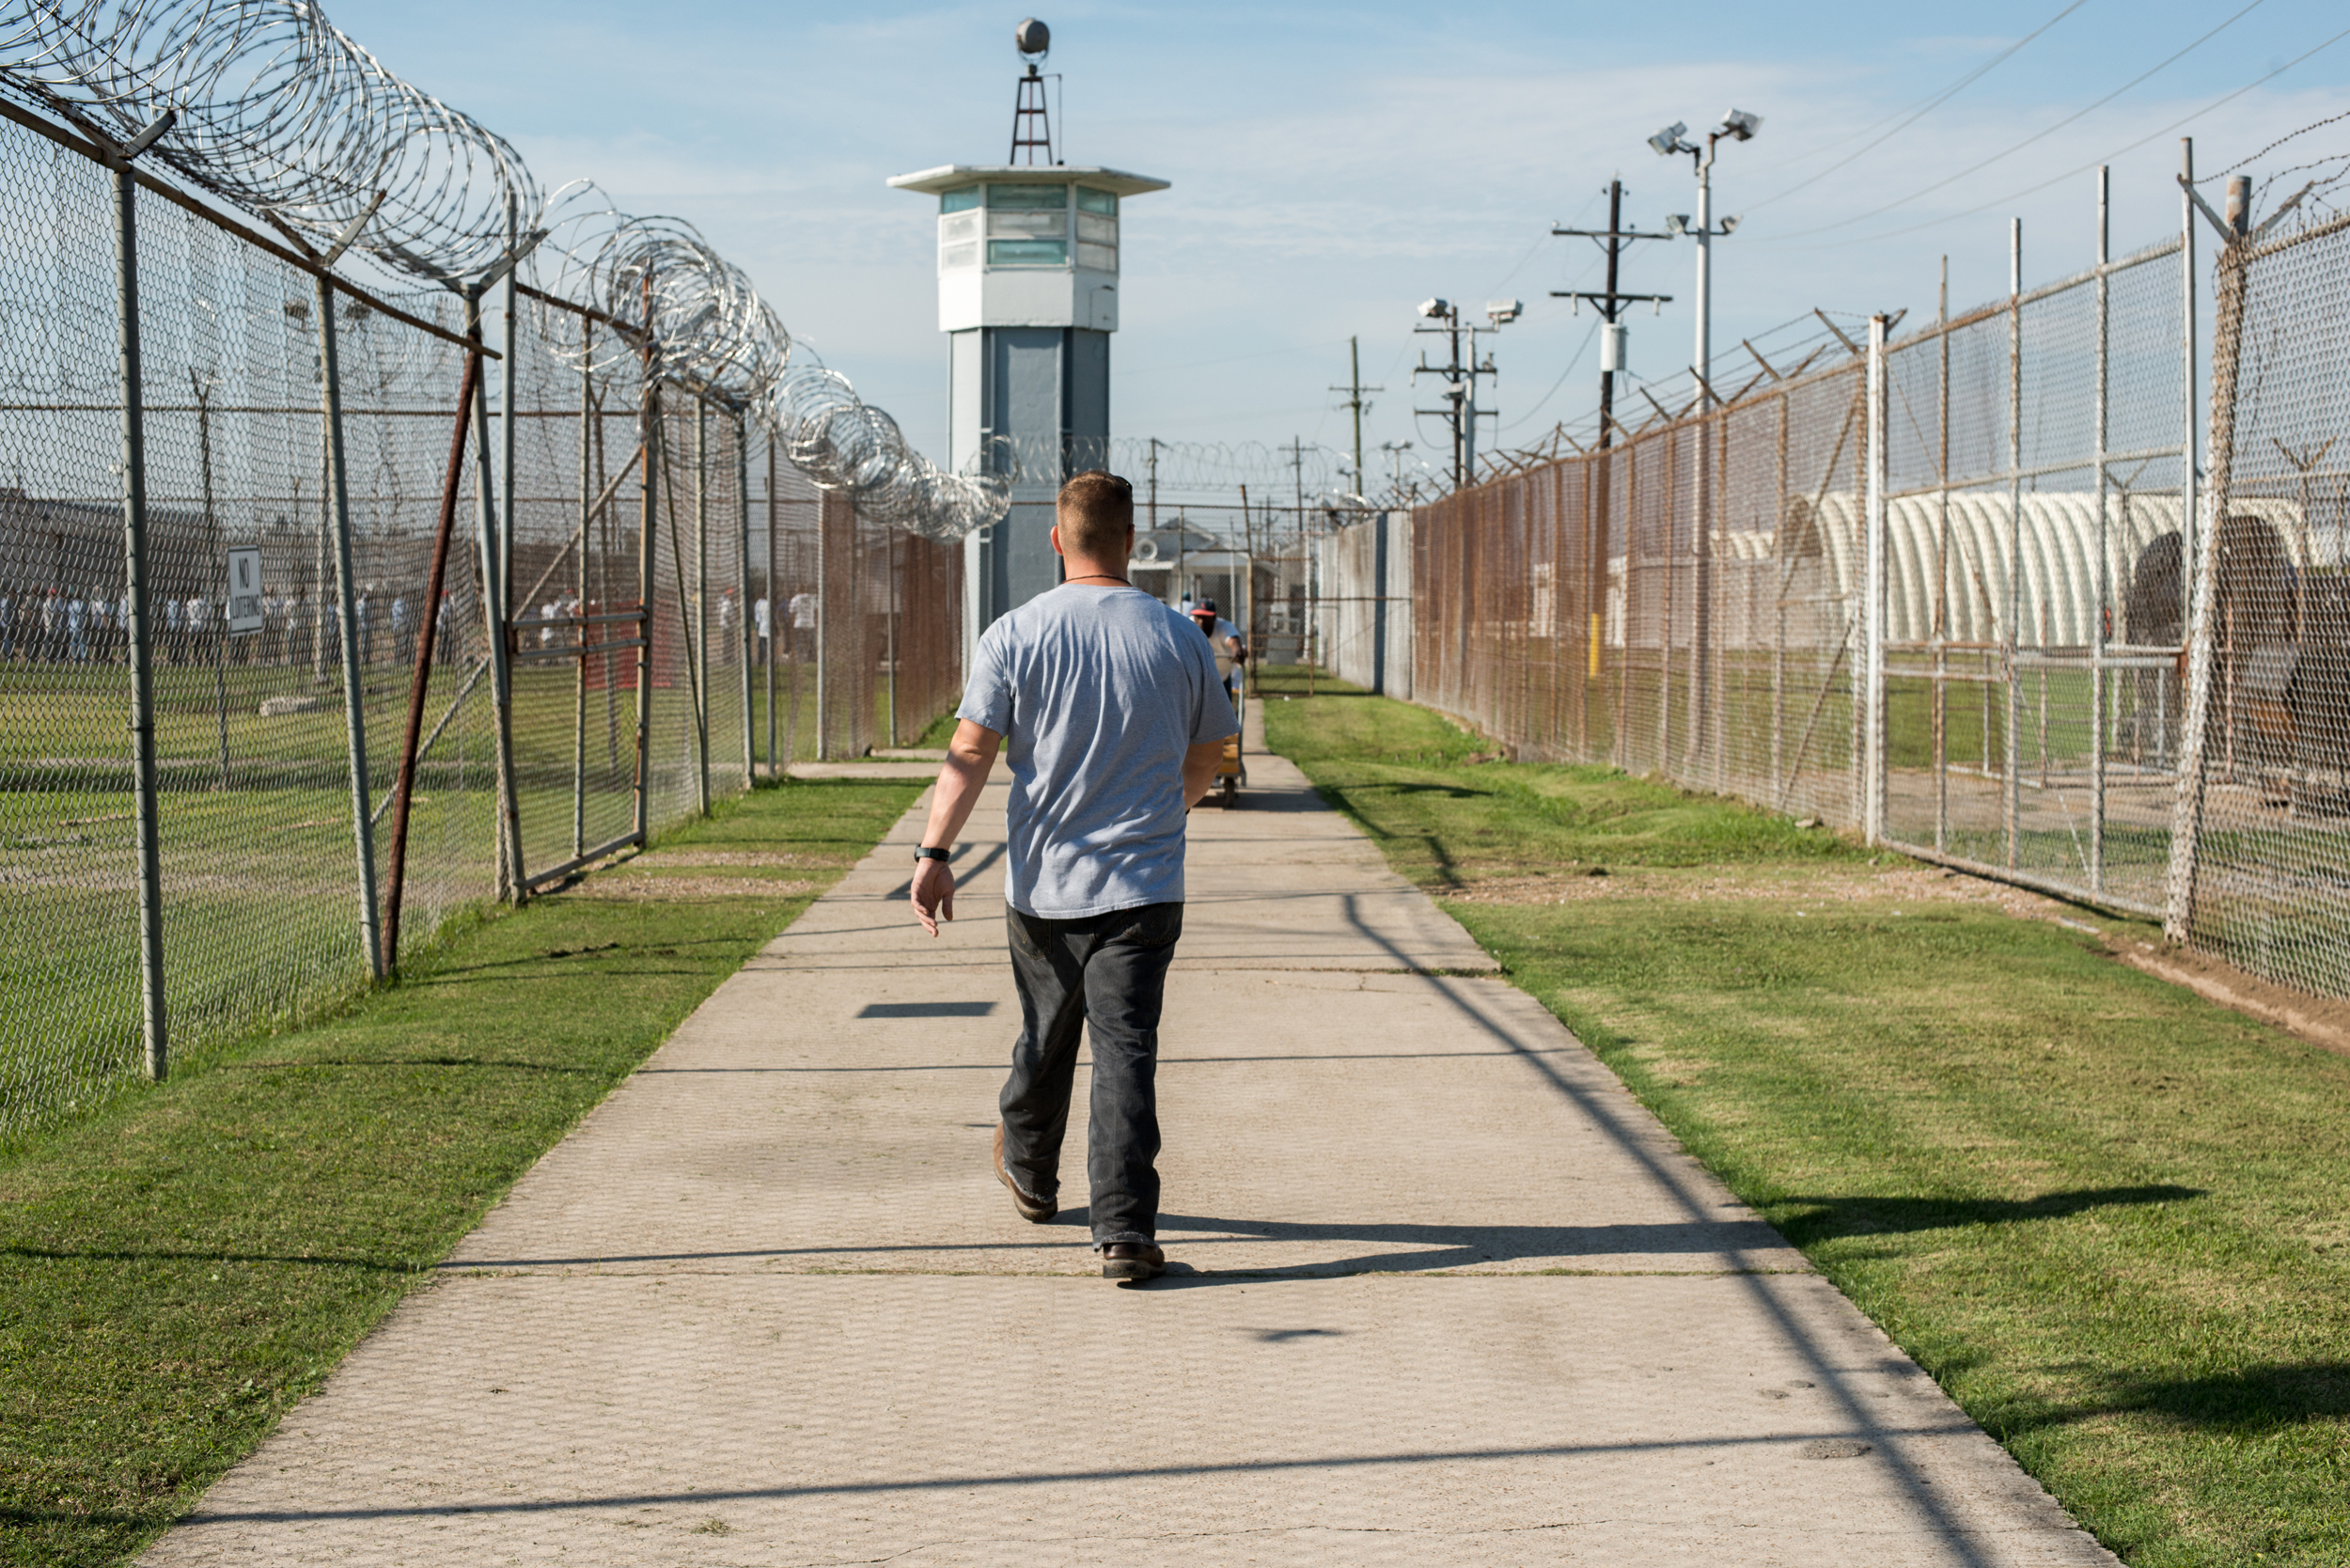 The push starts now': With Trump's support, prison reform